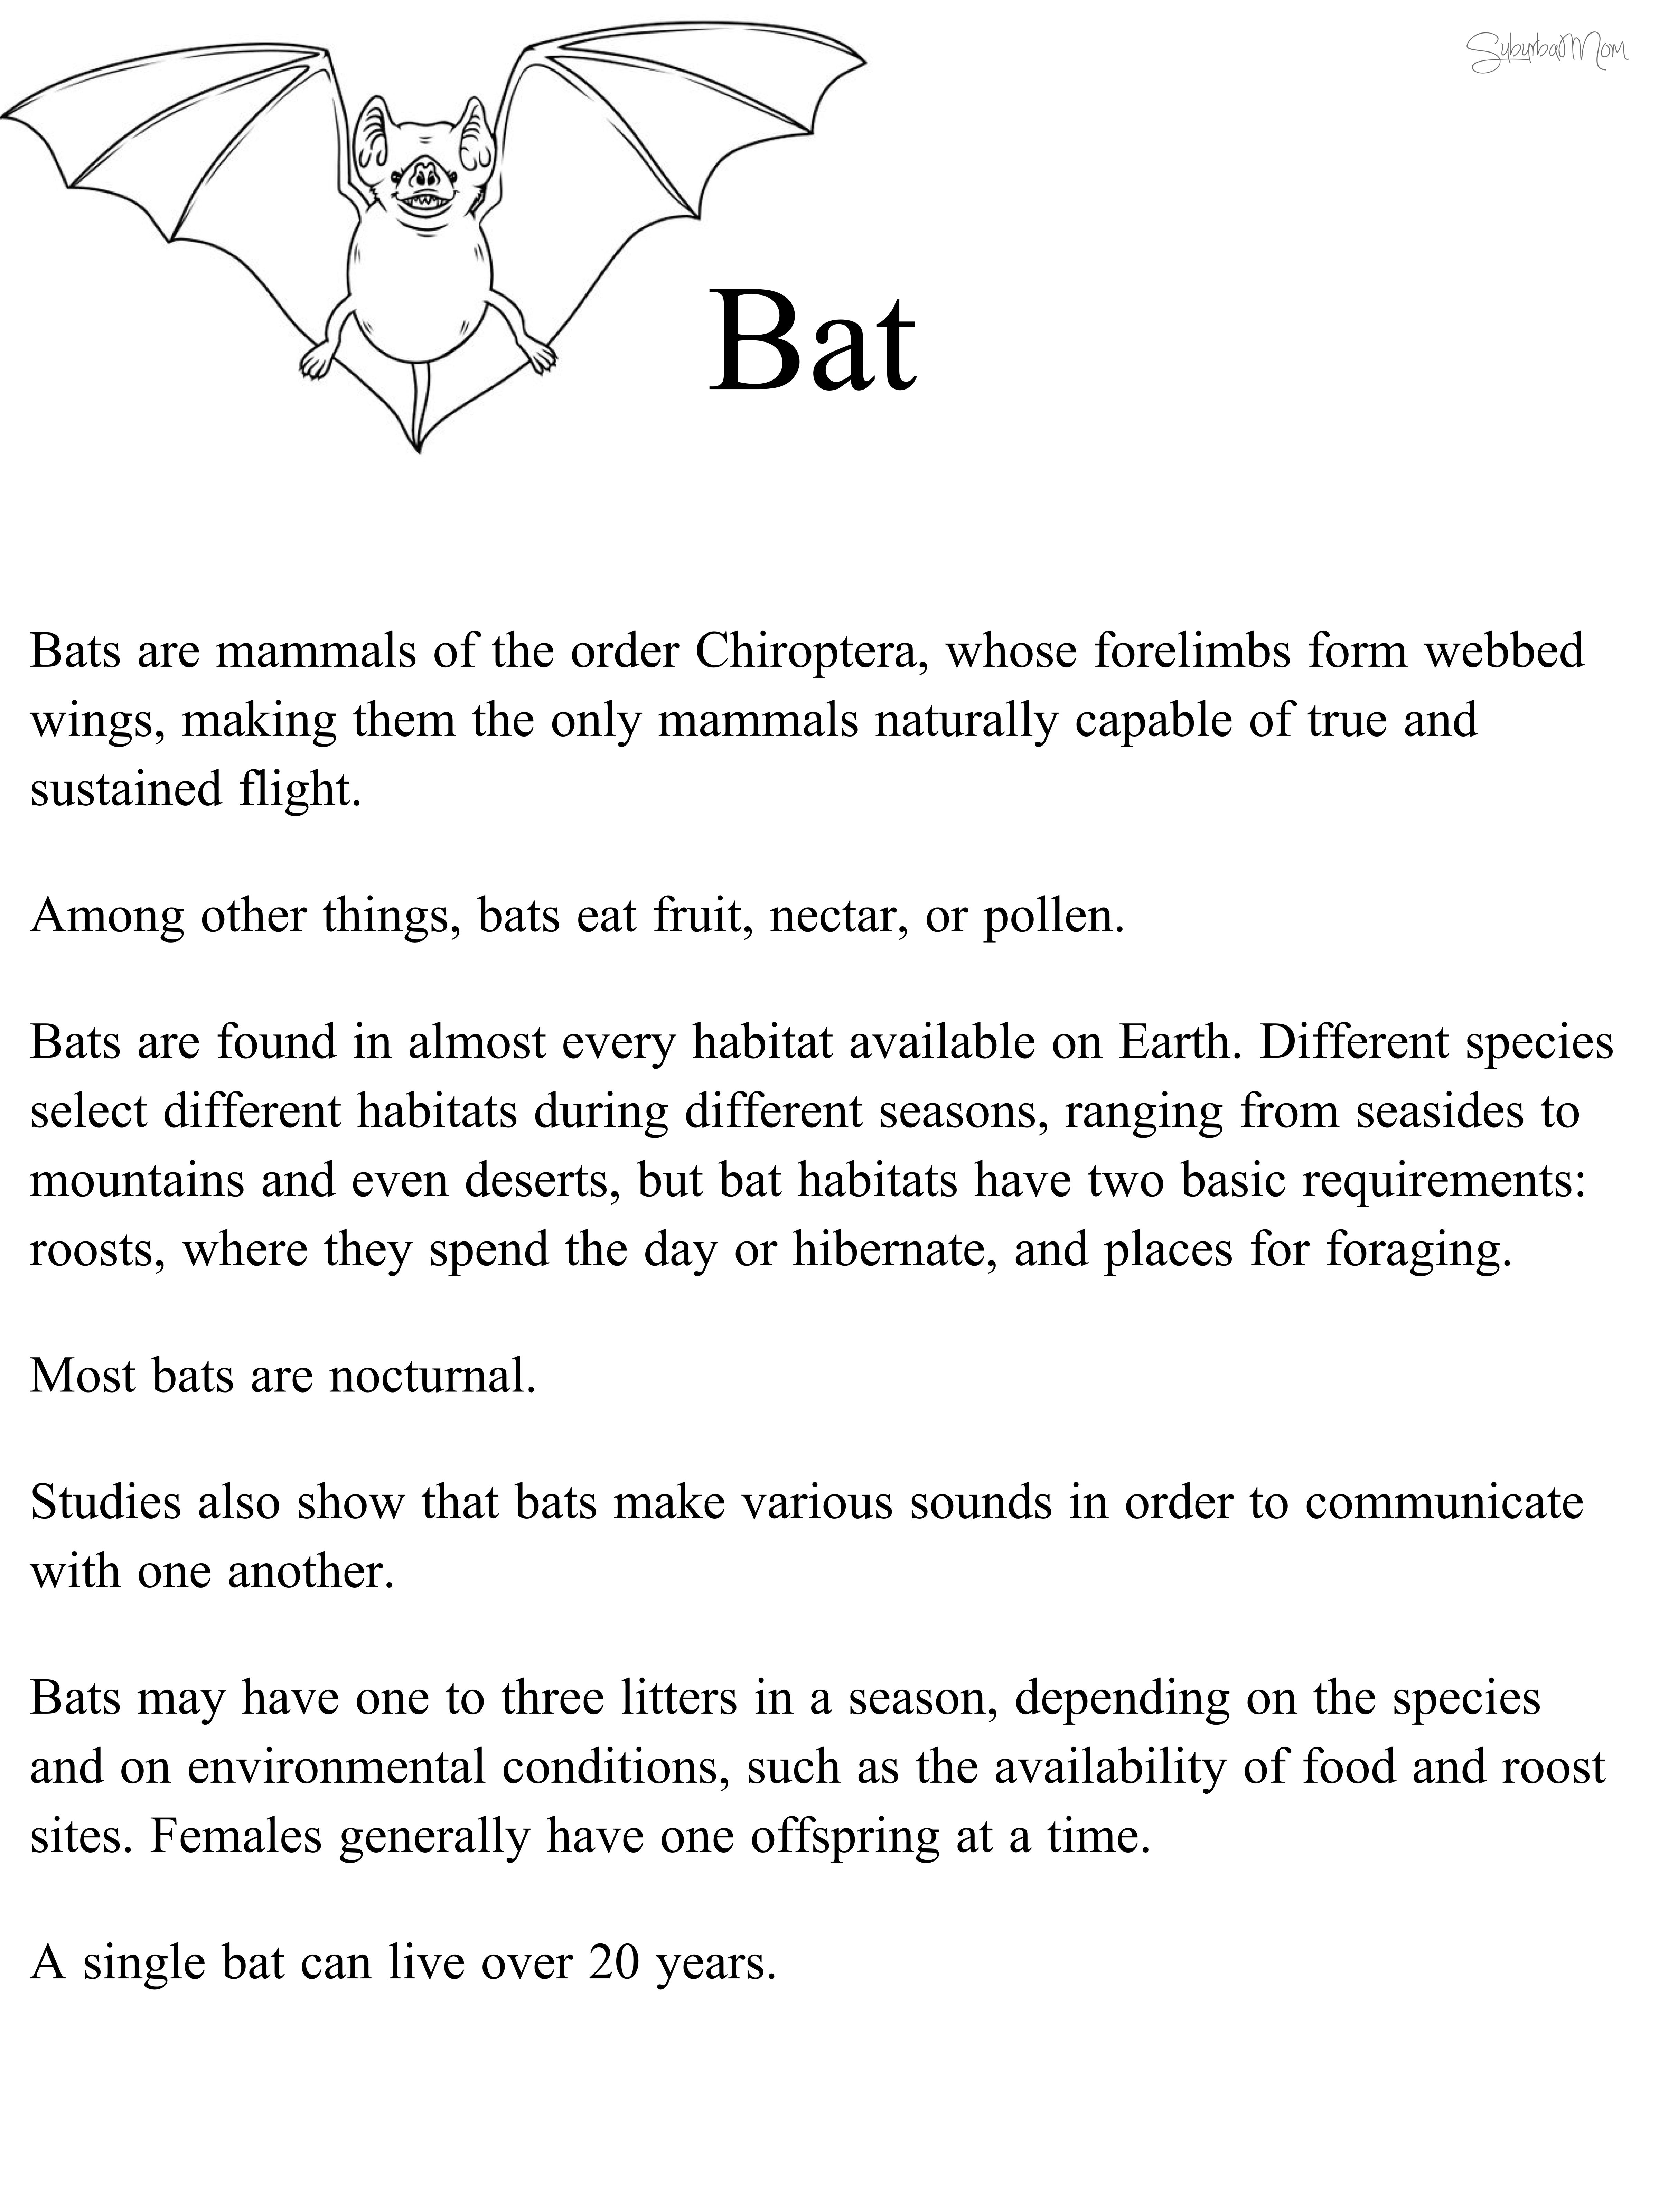 worksheet Fun Science Worksheets bat habitat science natural interactive 1st grade 2nd worksheet handout printable earth homeschool indepen